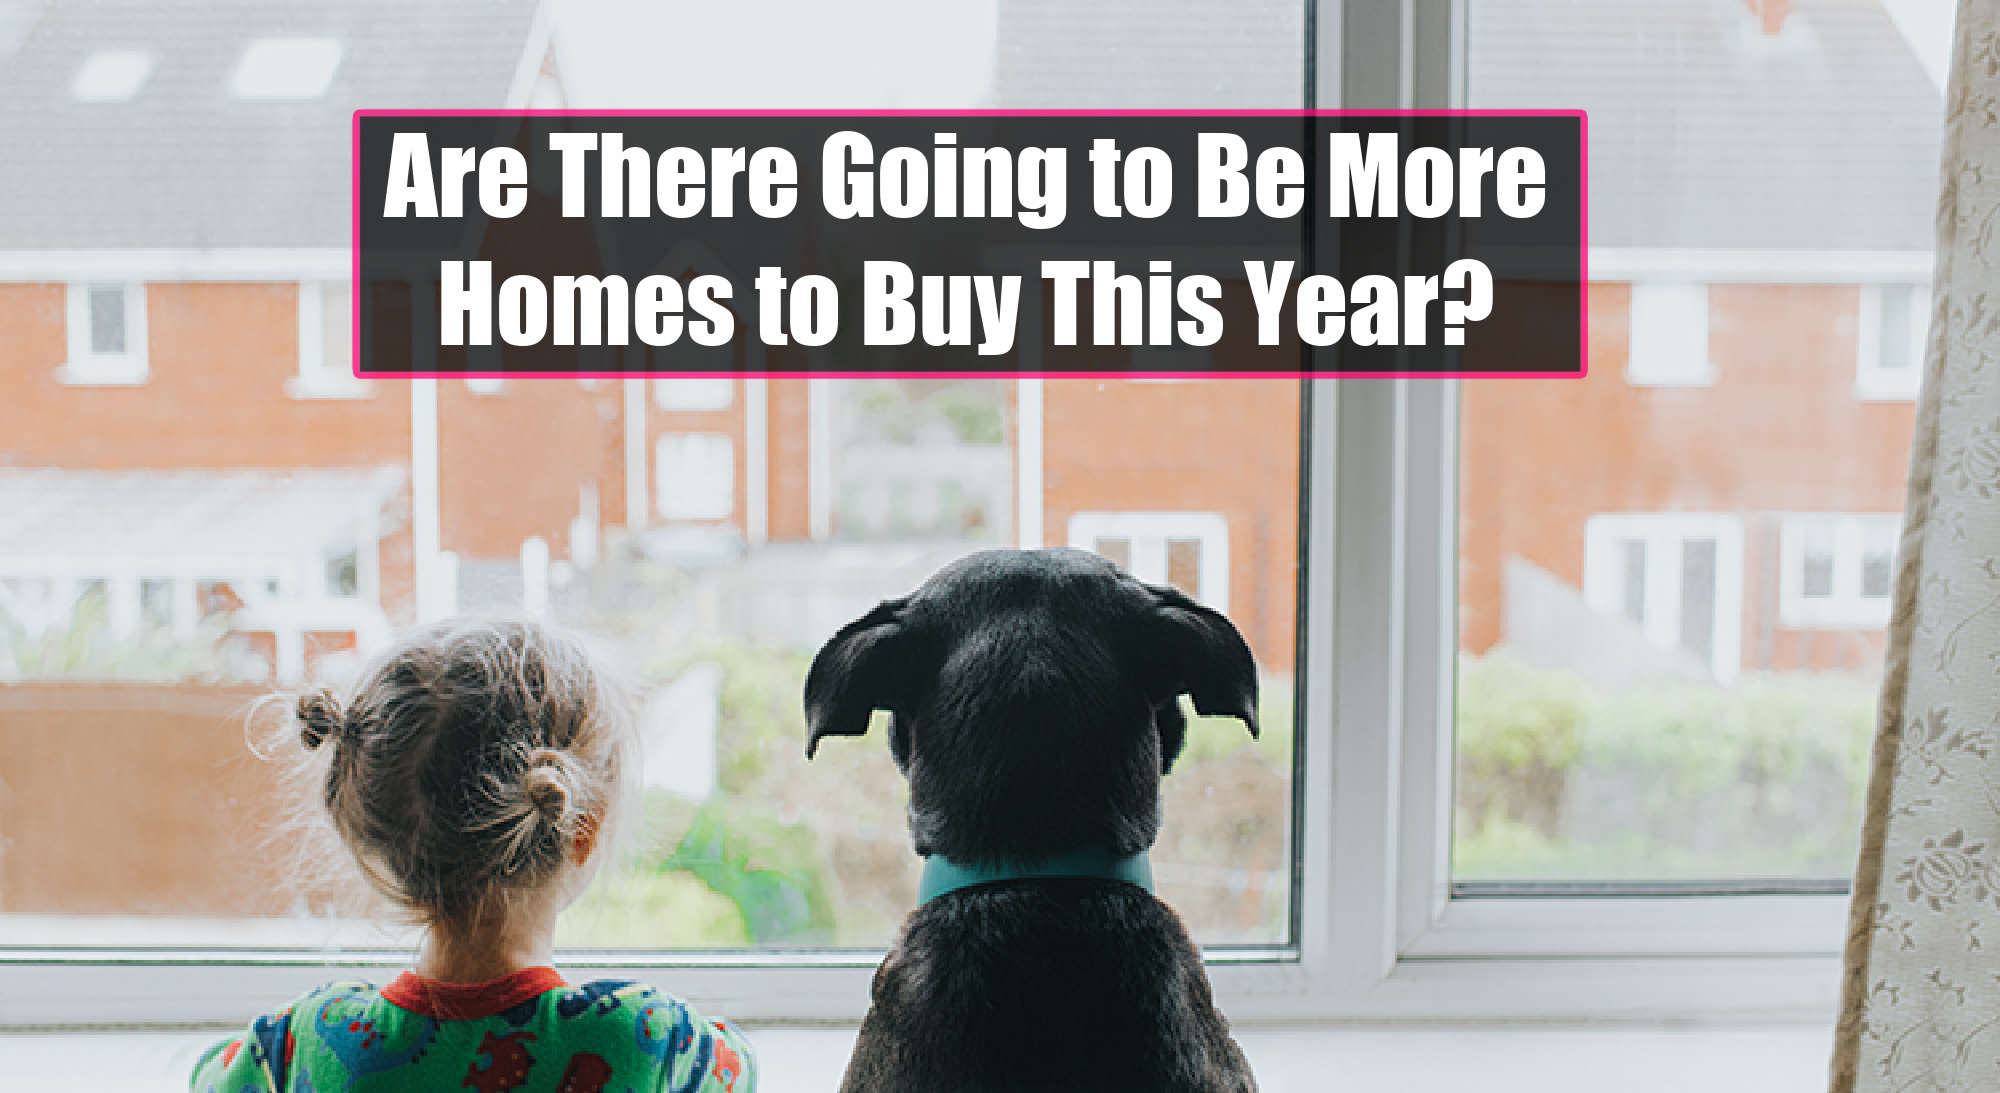 Are There Going to Be More Homes to Buy This Year (2021)?